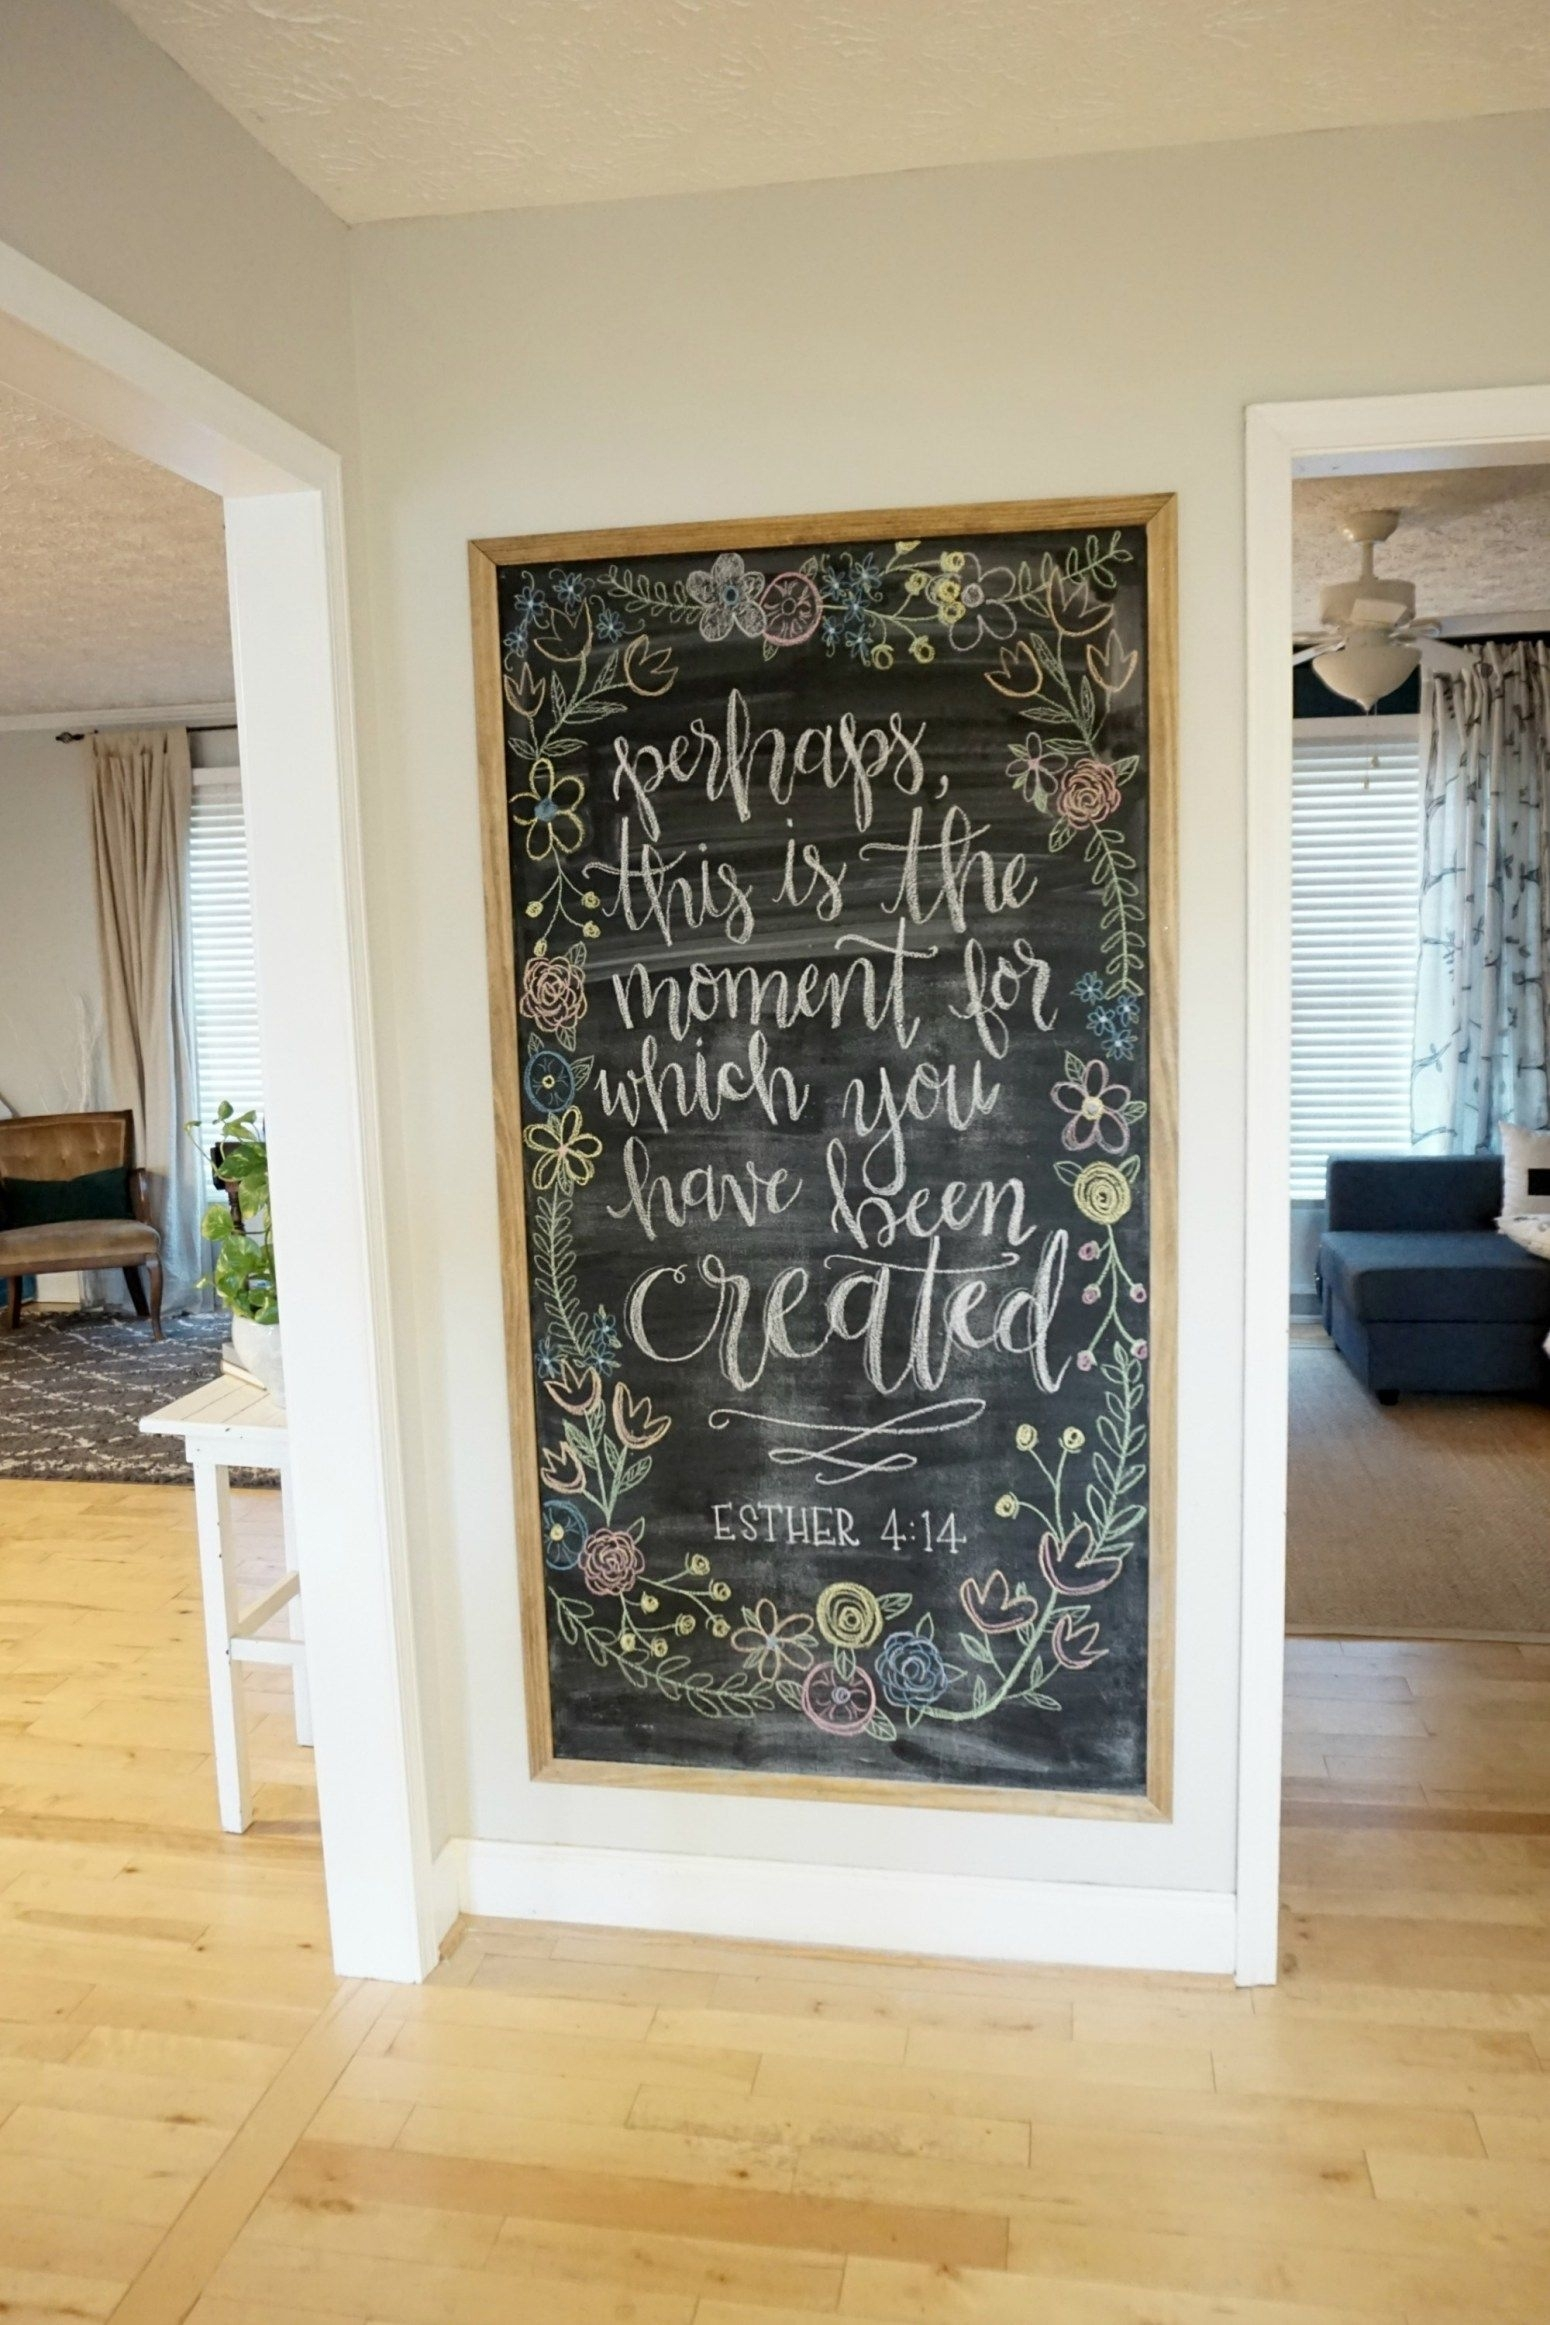 12 Affordable Ideas For Large Wall Decor | Chalkboard Inspirations Intended For Newest Large Wall Art (View 6 of 15)